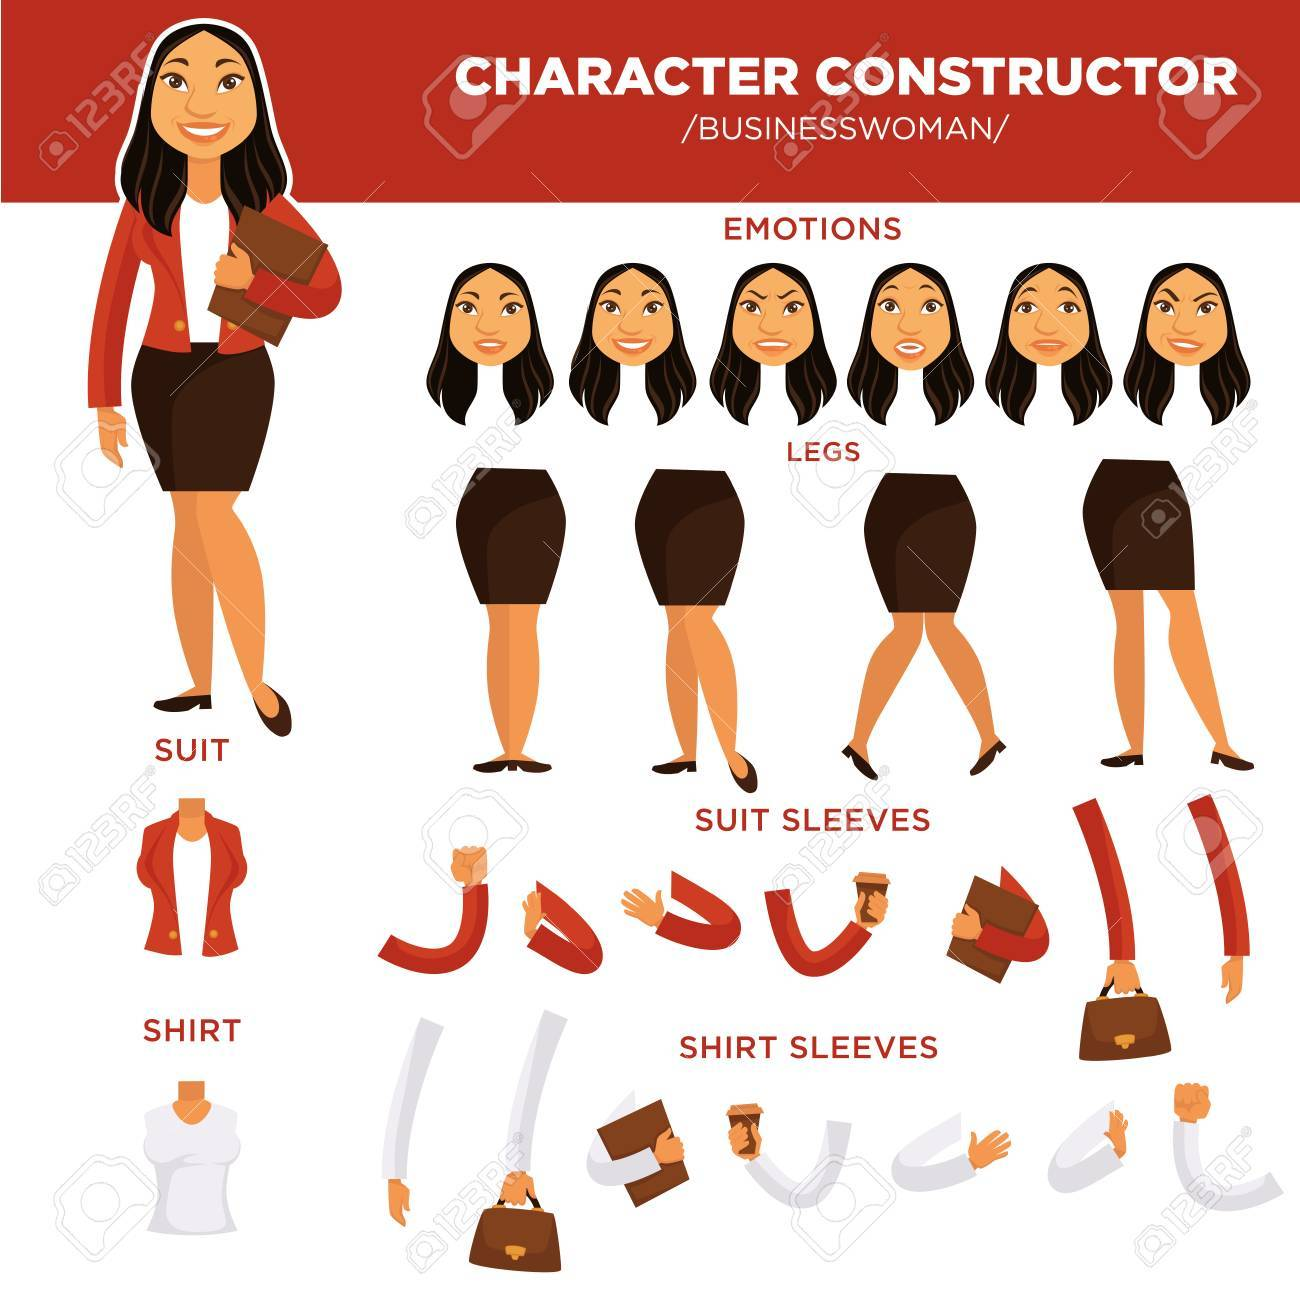 woman character constructor businesswoman face clothes templates